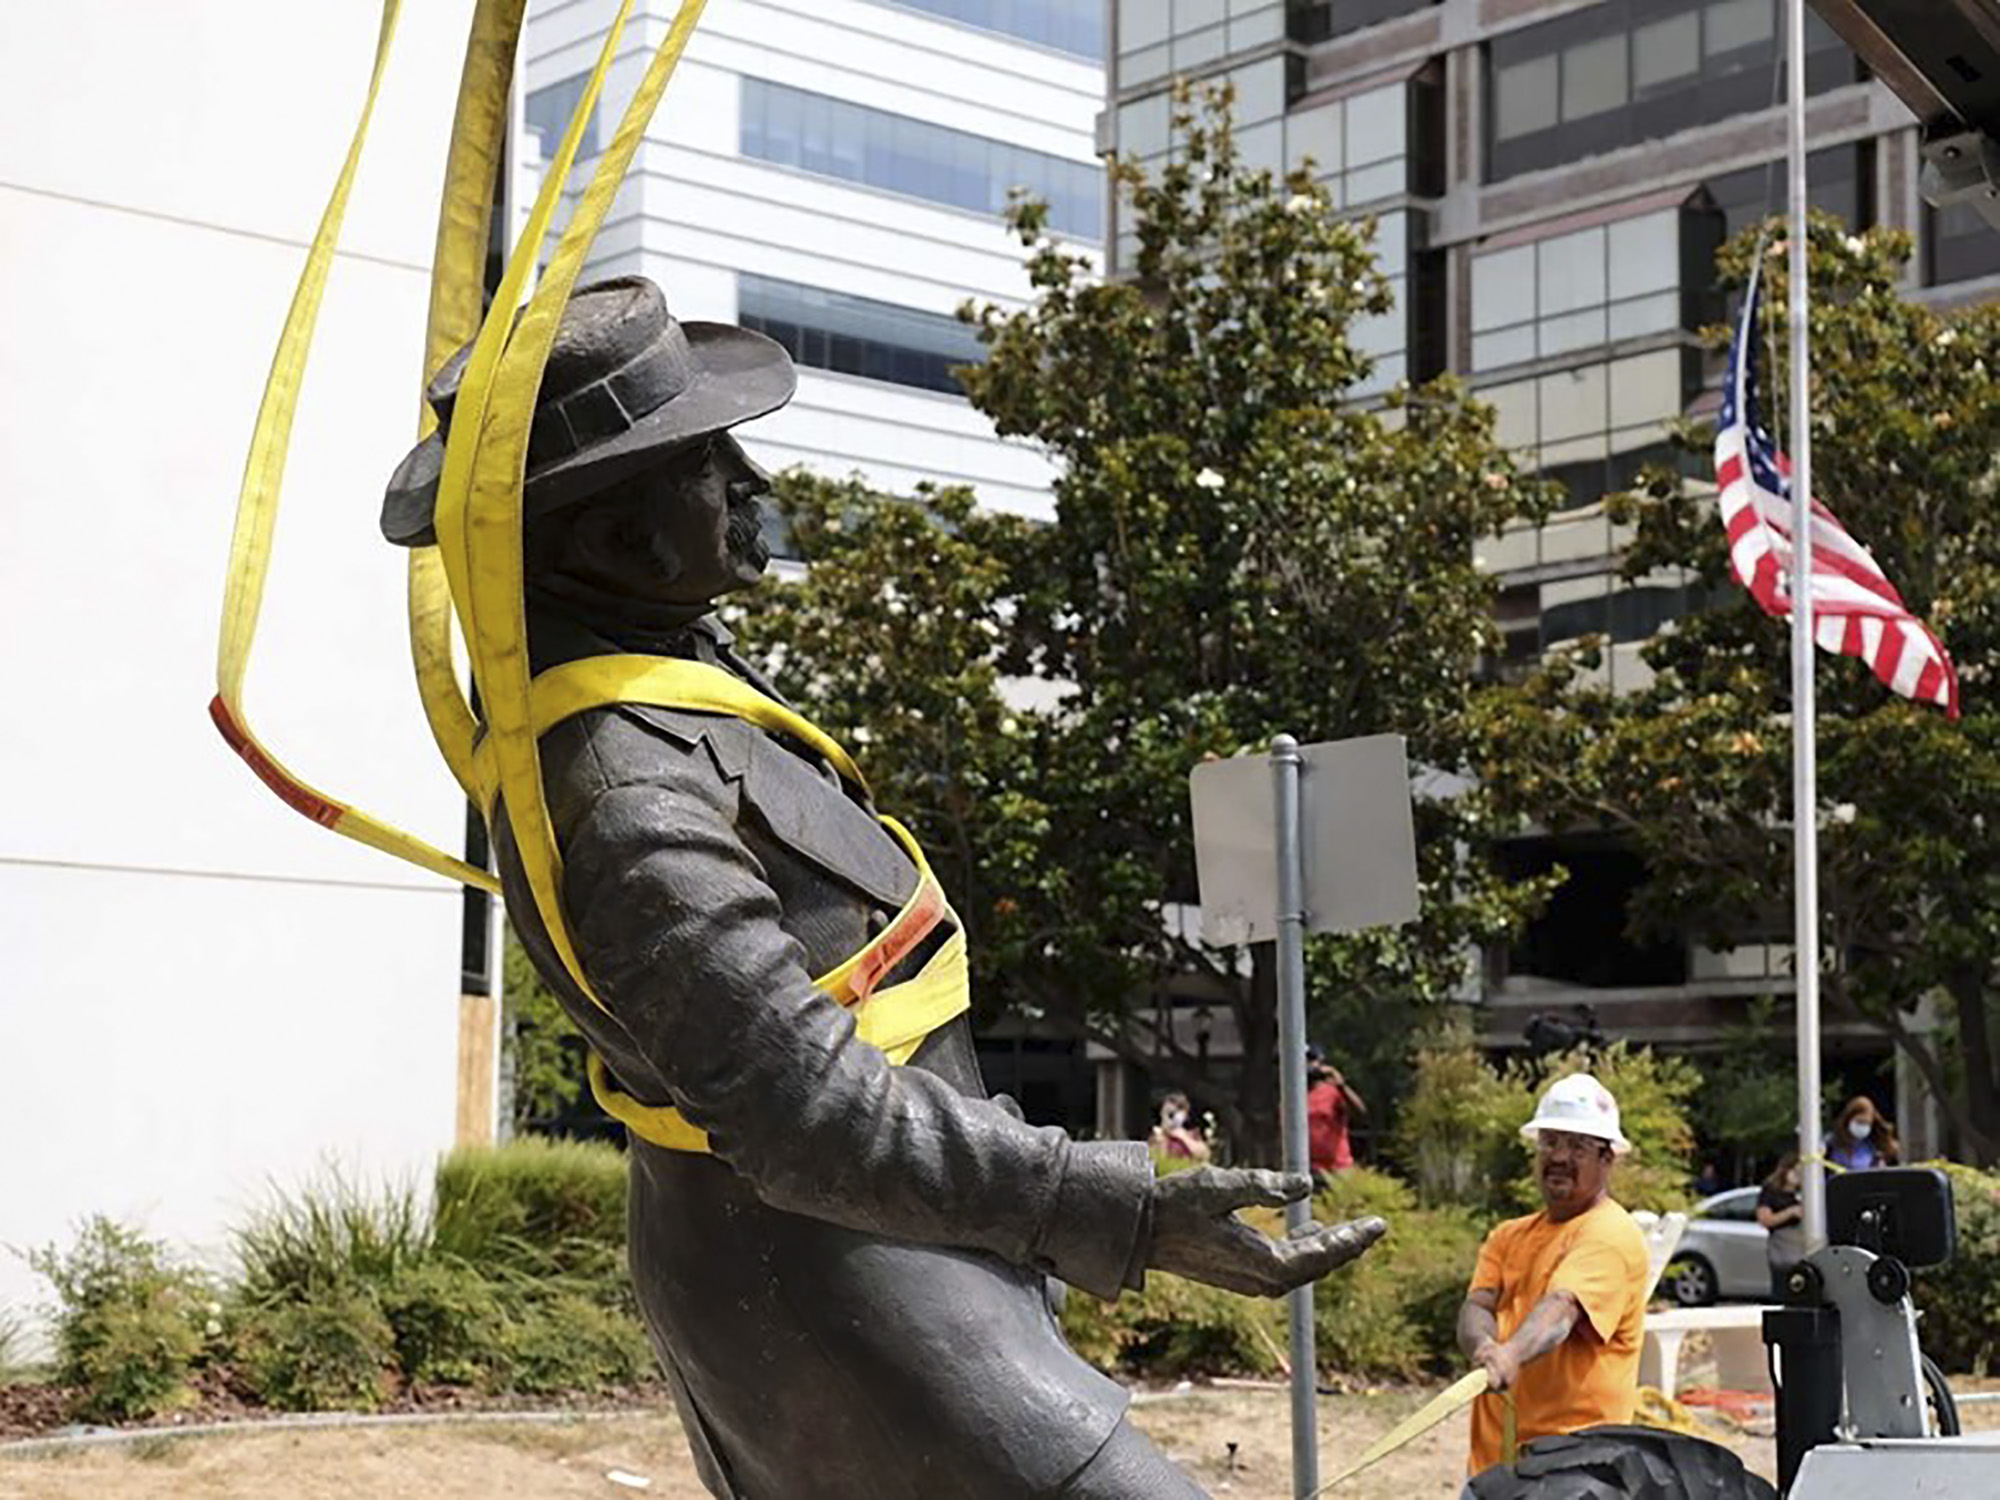 Workers remove the statue of John Sutter outside the Sutter Medical Center in Midtown Sacramento on June 15, 2020. Photo by Andrew Nixon / CapRadio